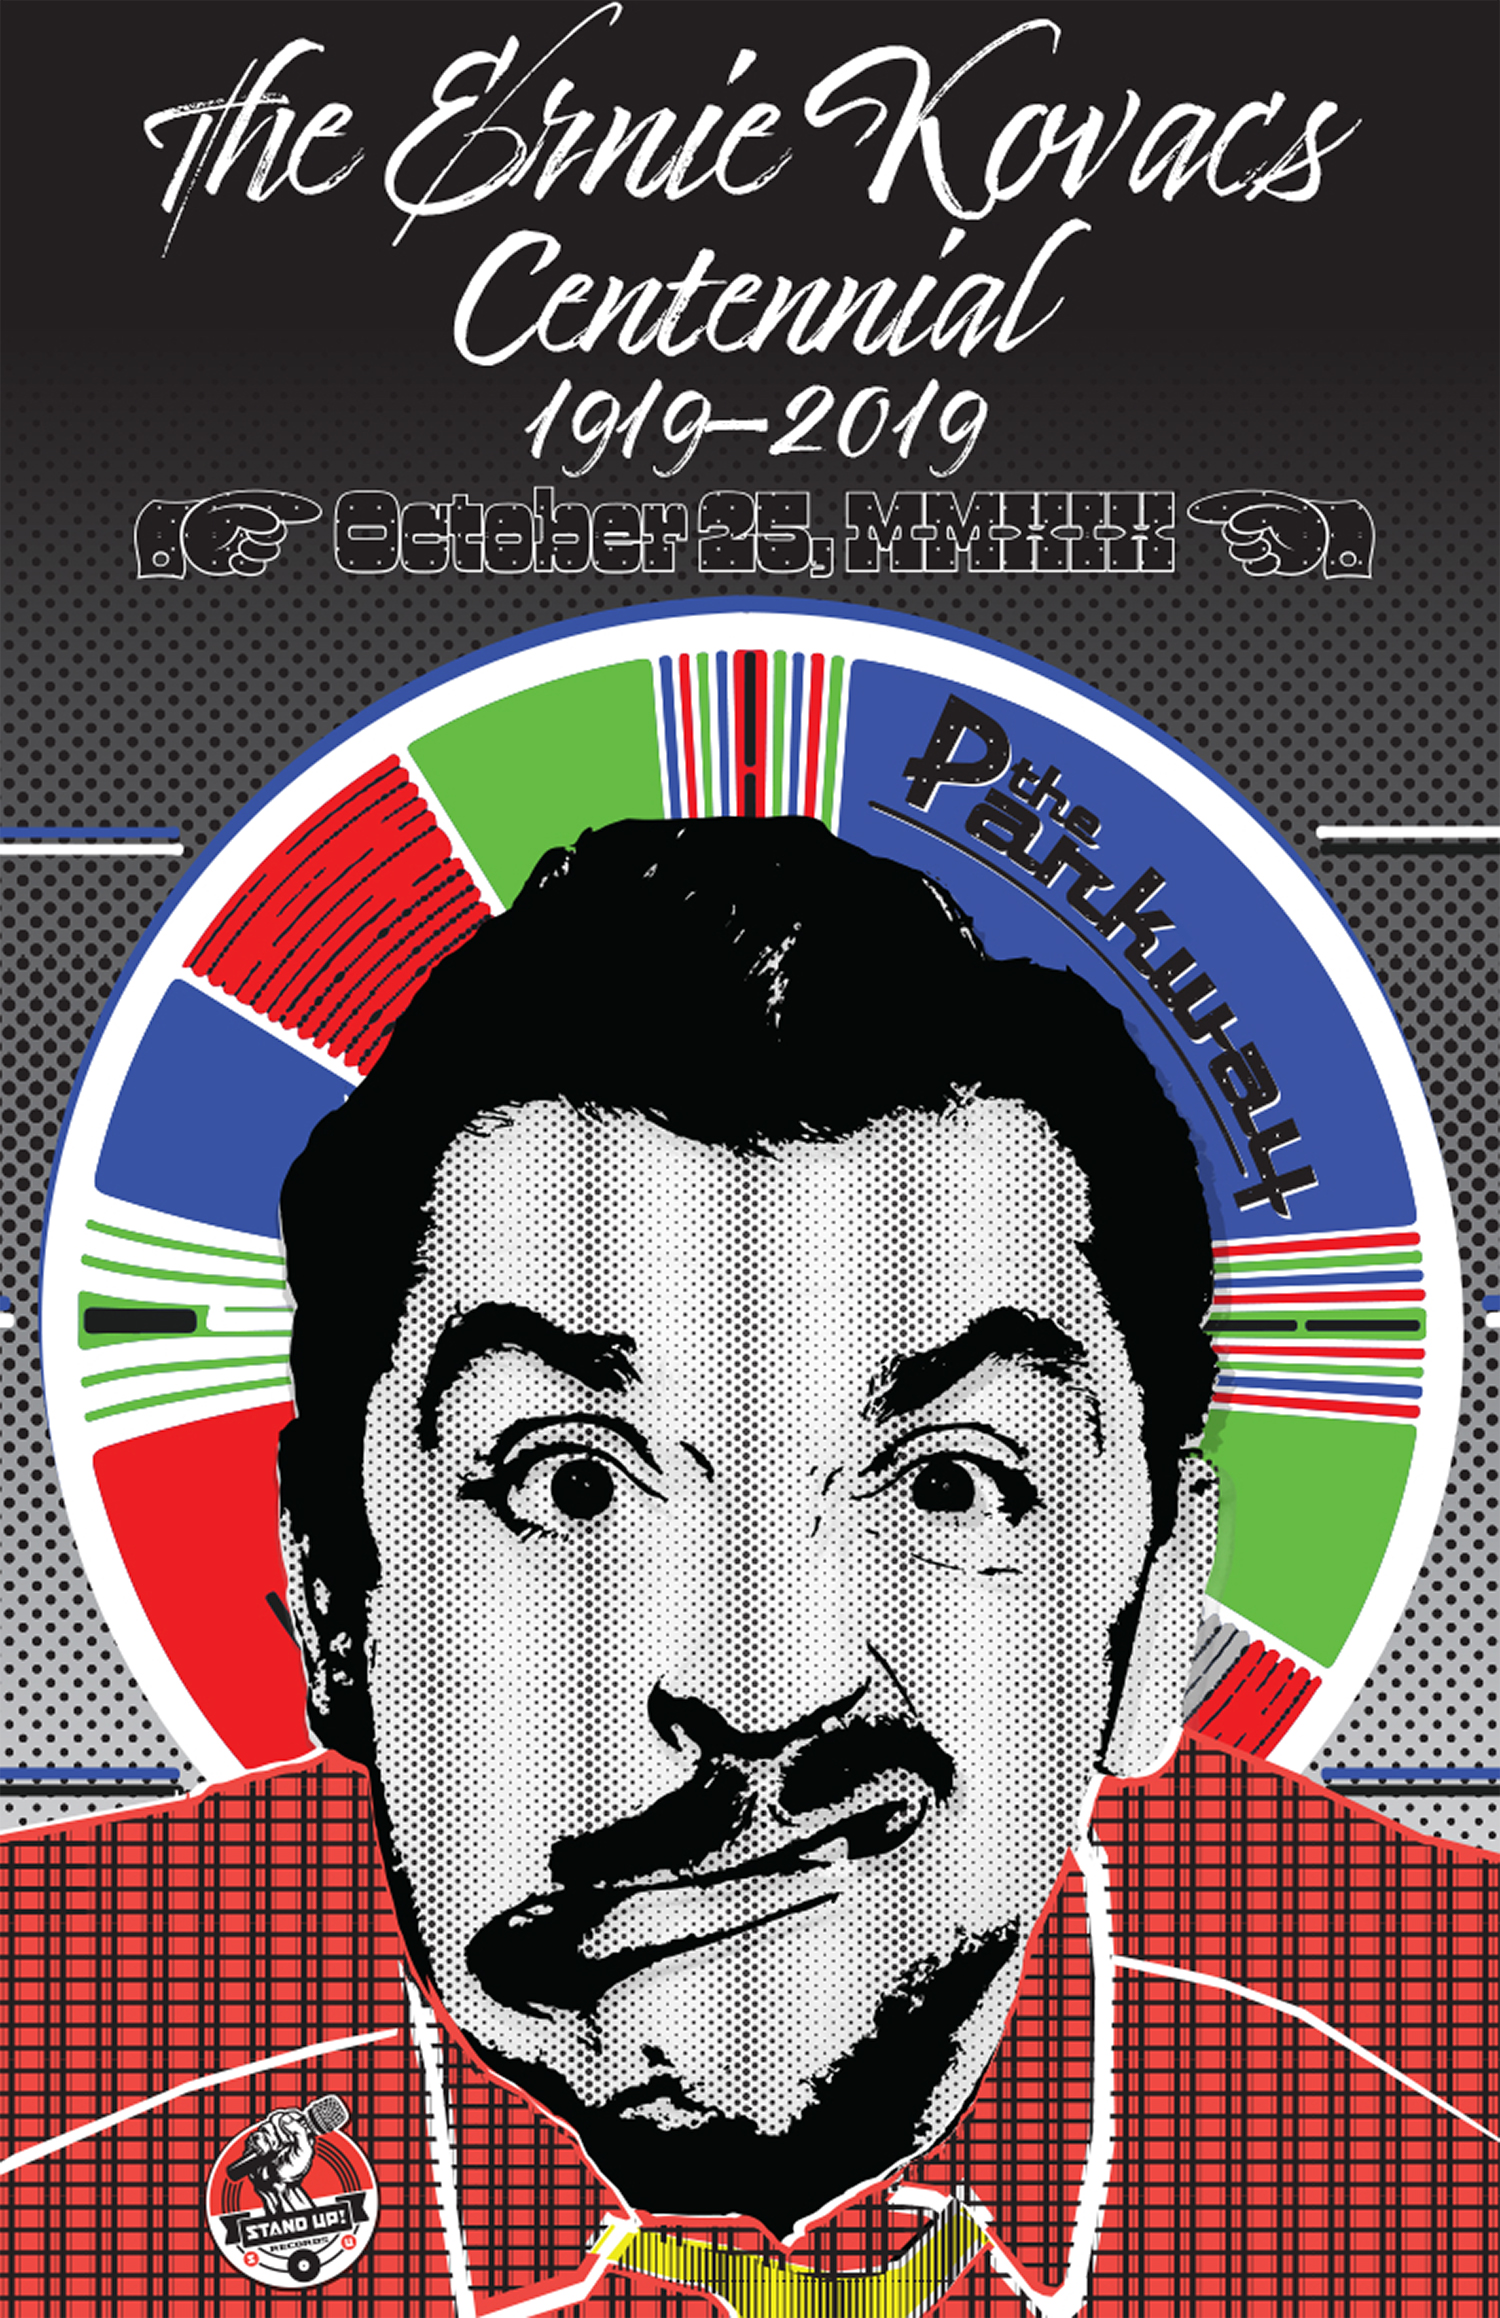 ERNIE KOVACS CENTENNIAL EVENTS CONFIRMED FOR CHICAGO AND MINNEAPOLIS ON OCTOBER 24 AND 25